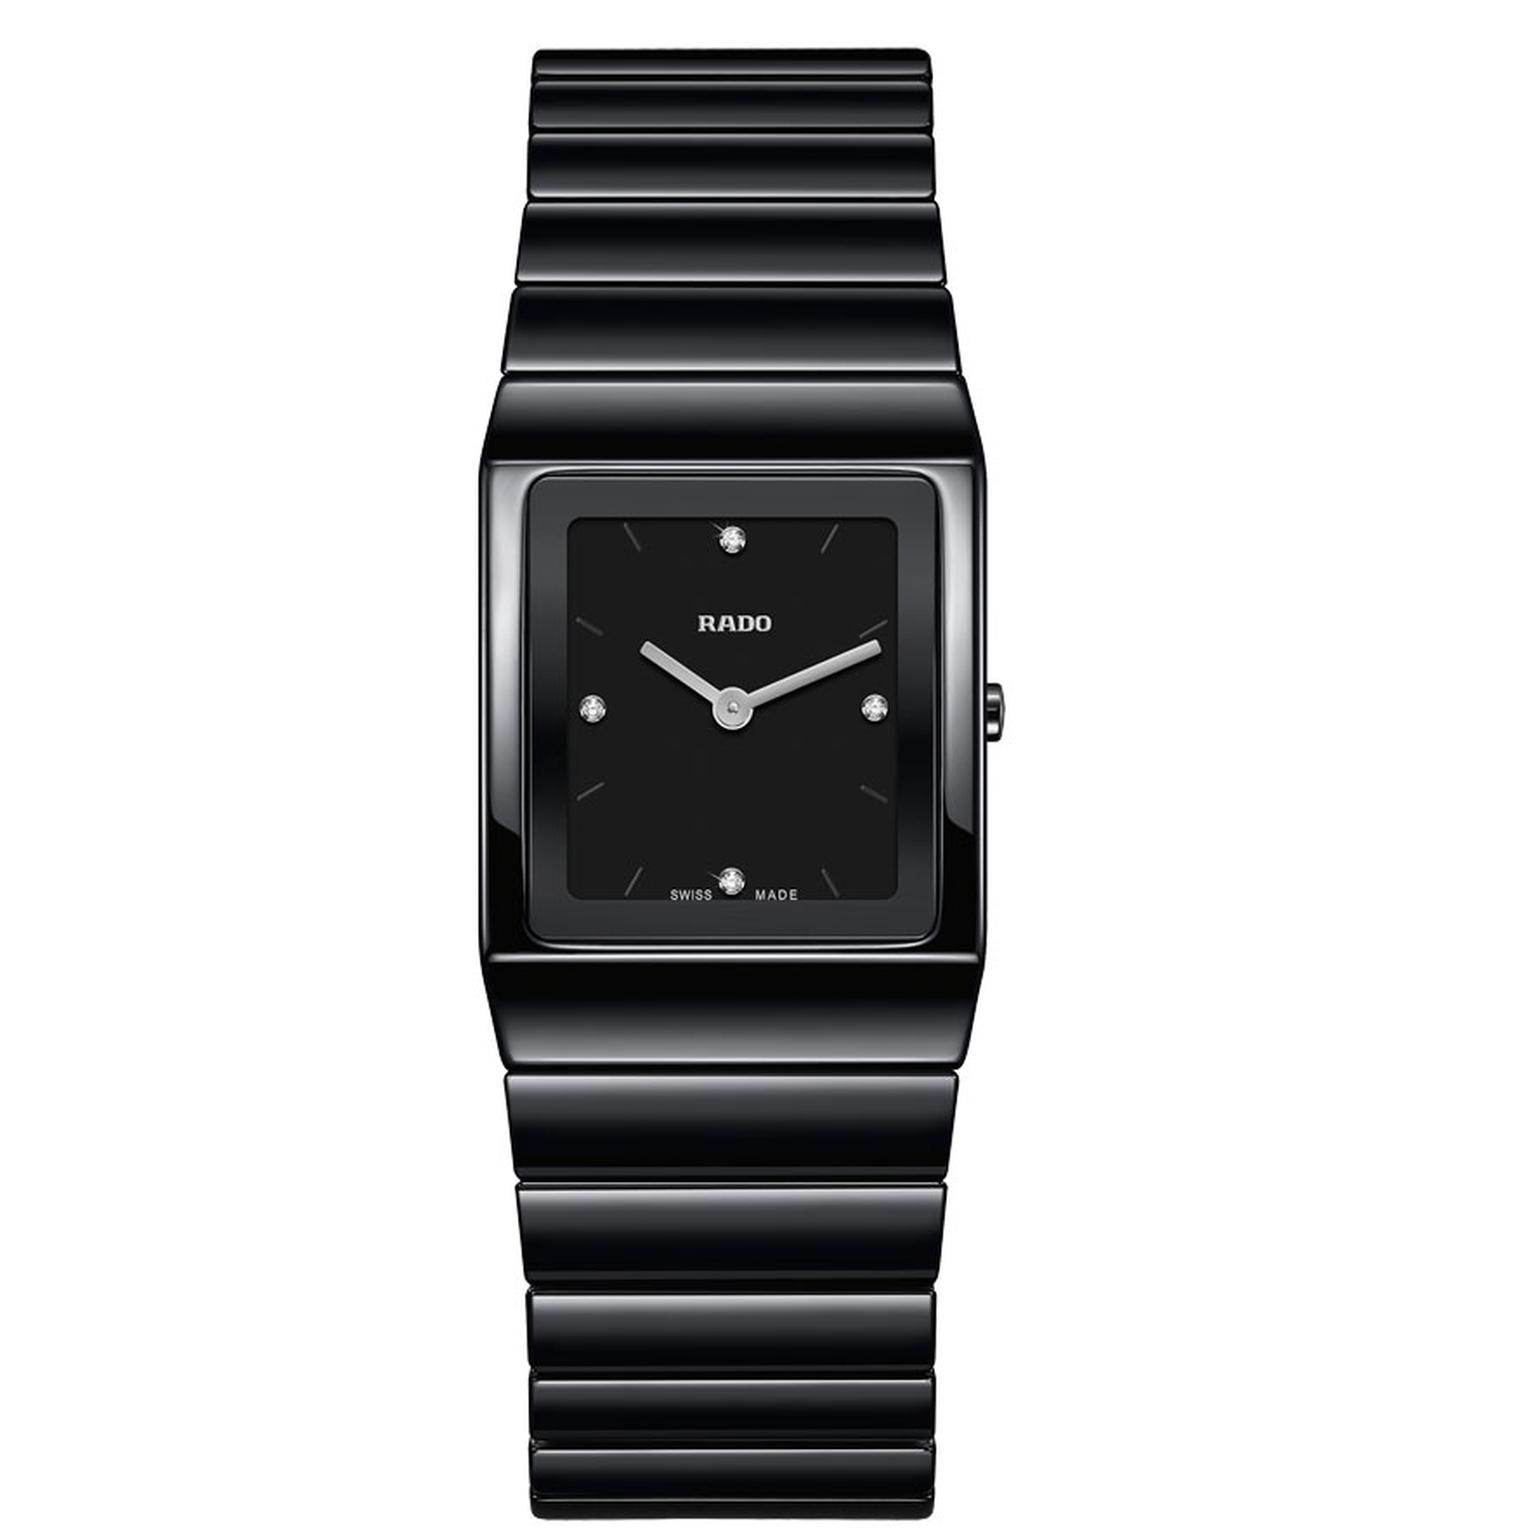 Rado Ceramica ladies' watch in black